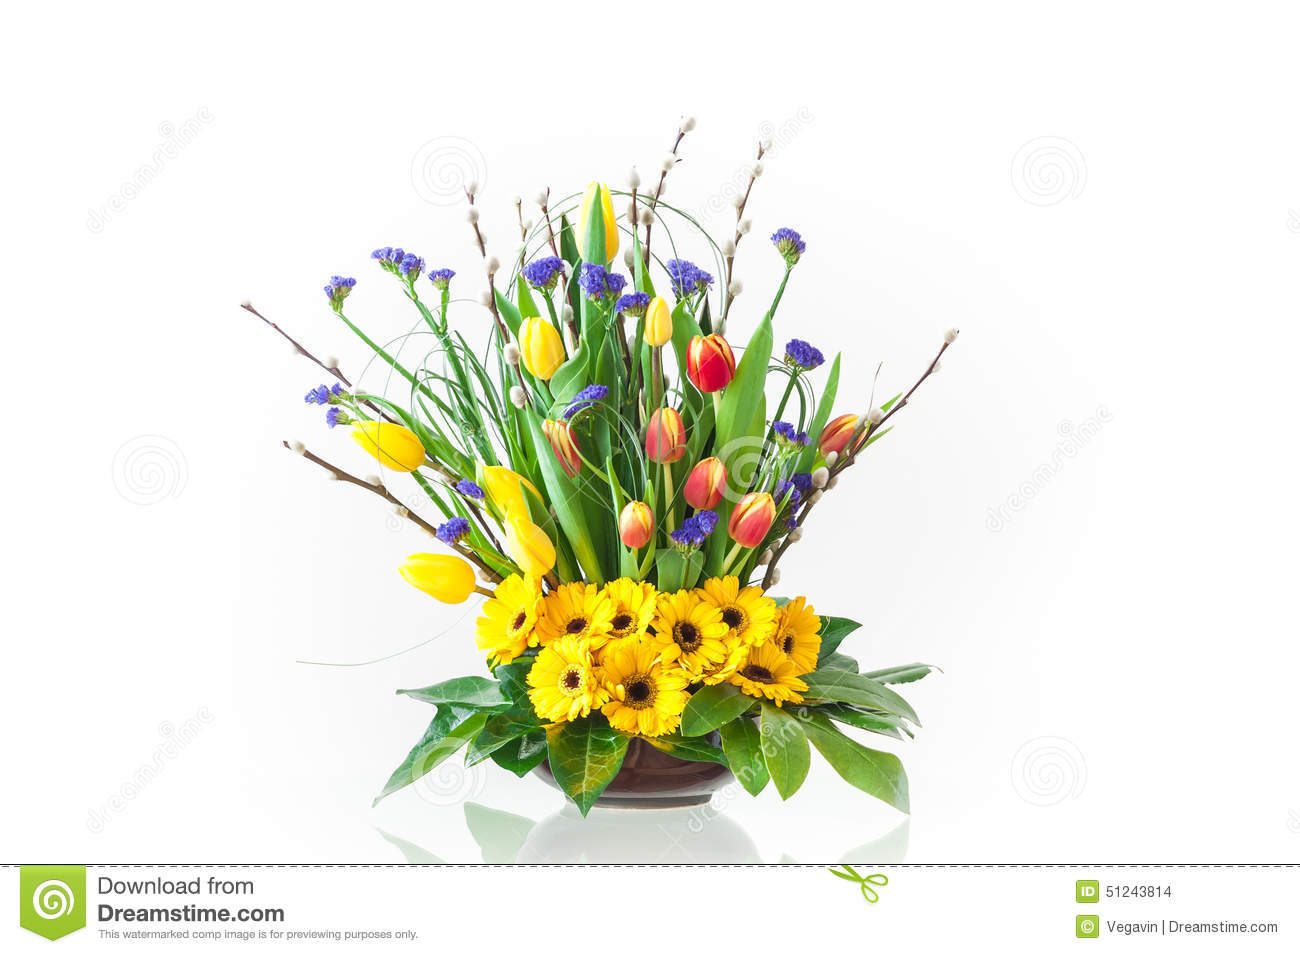 Bouquet of spring flowers stock photo image of fresh 51243814 bouquet of gerberas tulips and hiacynts on white background typical spring and easter flowers izmirmasajfo